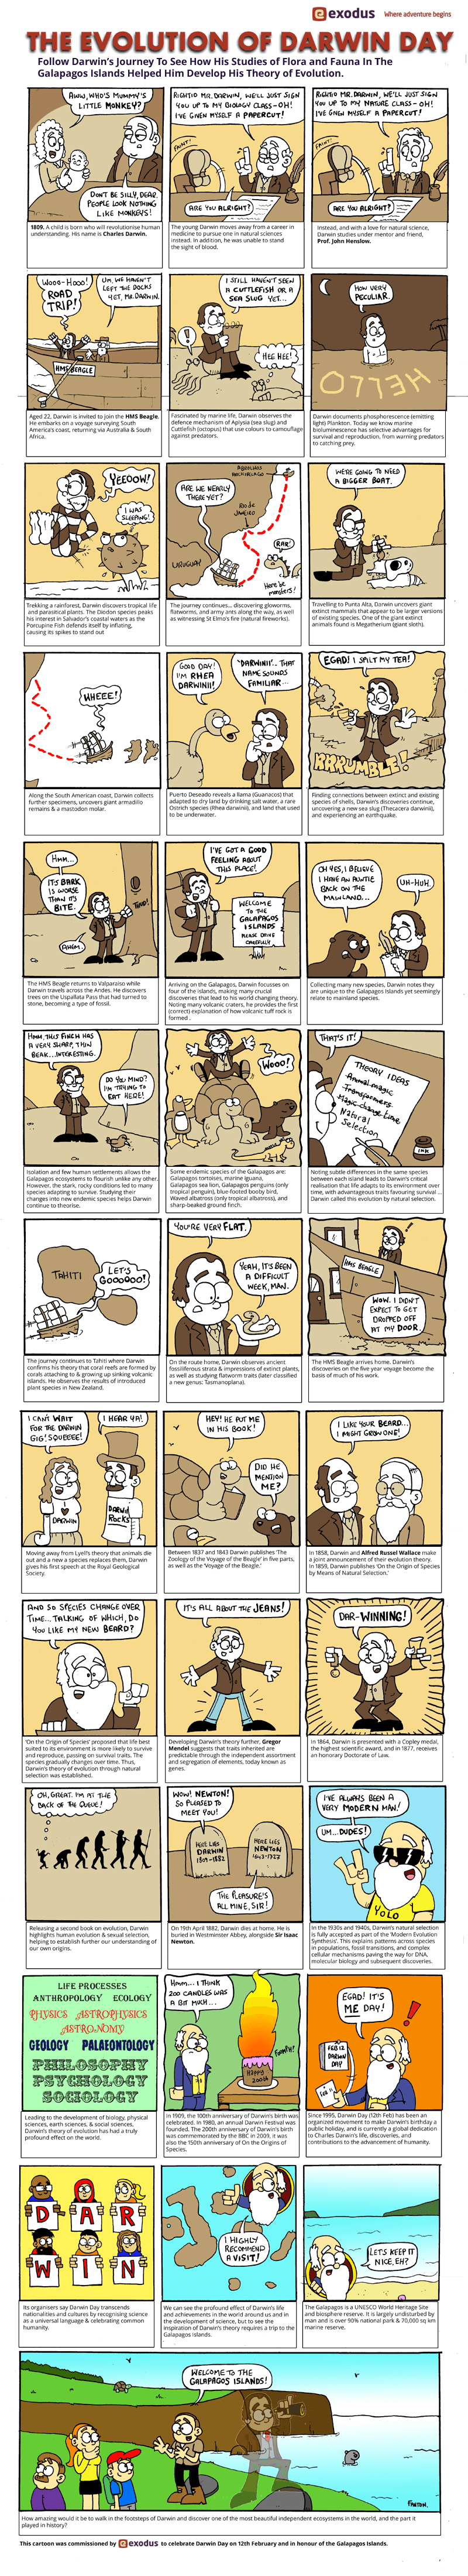 Darwin Day Comic Strip - Galapagos Islands